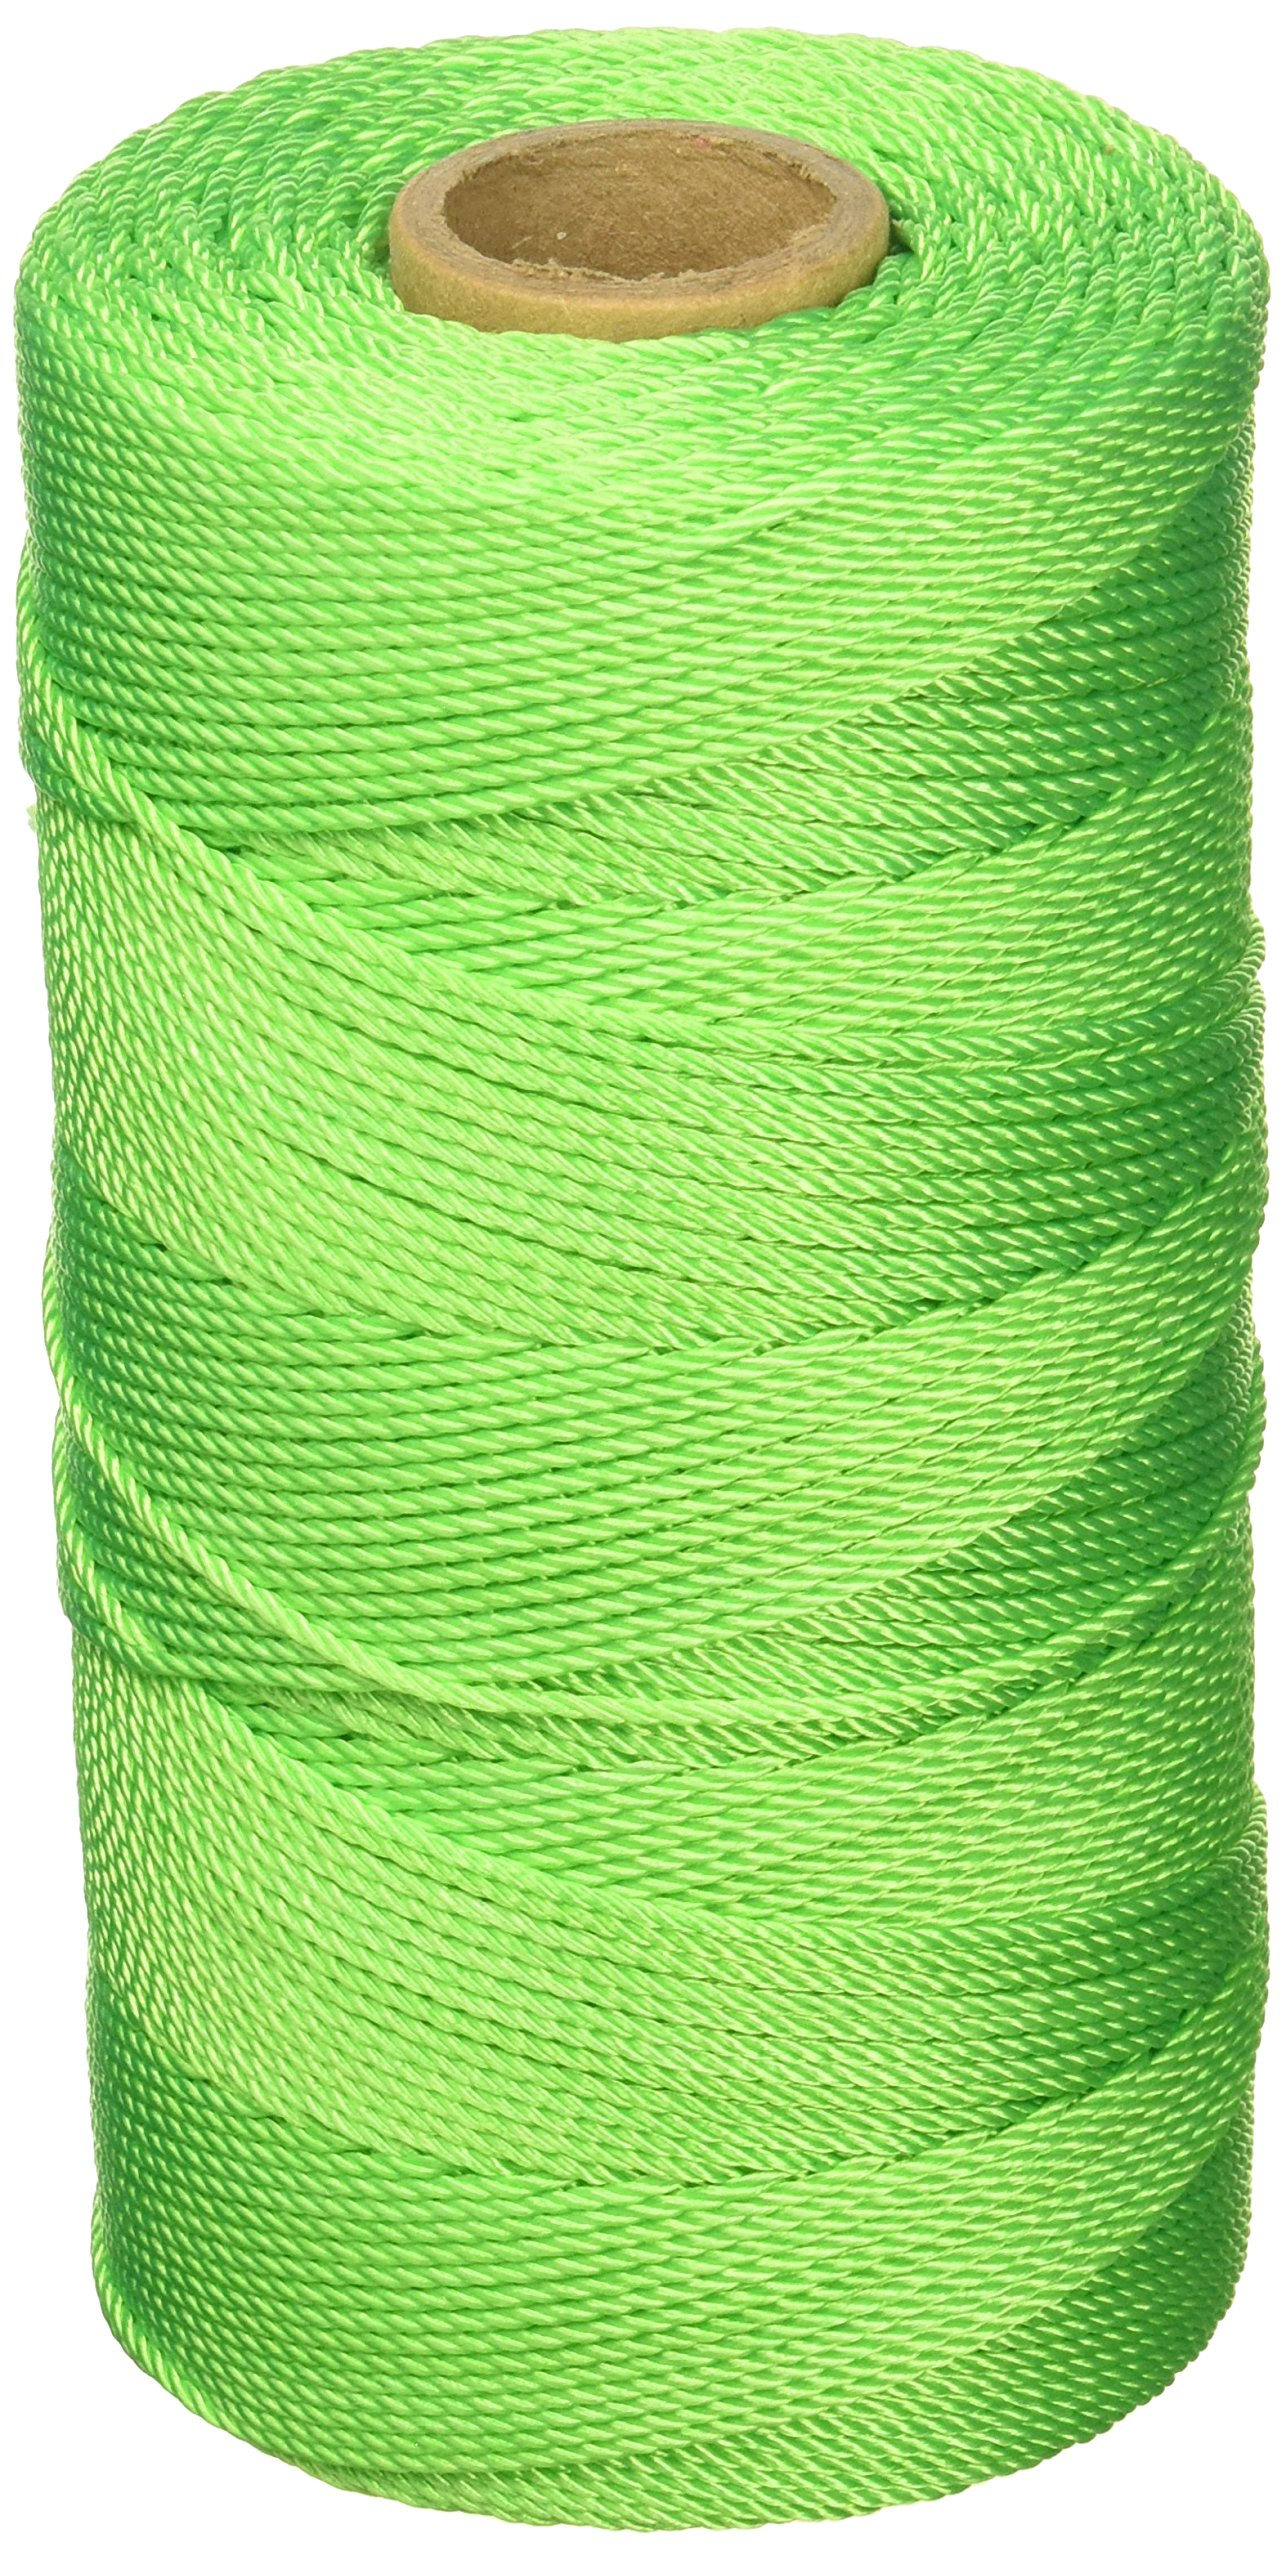 Keson GT1090 18 Gauge Twisted Nylon Mason Twine, Green, 1,090-Foot by Keson